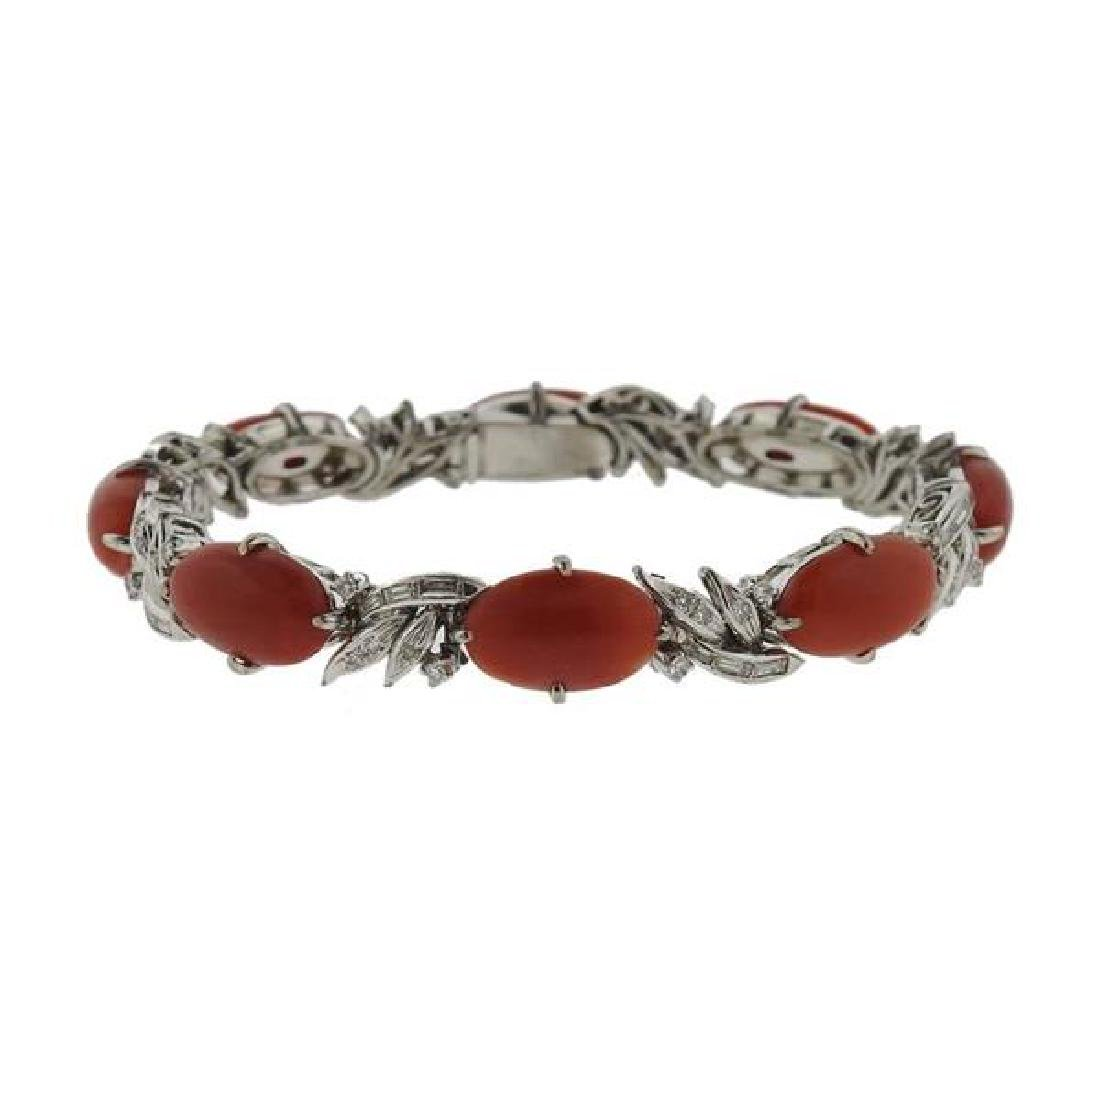 14K Gold Diamond Coral Bracelet - 5